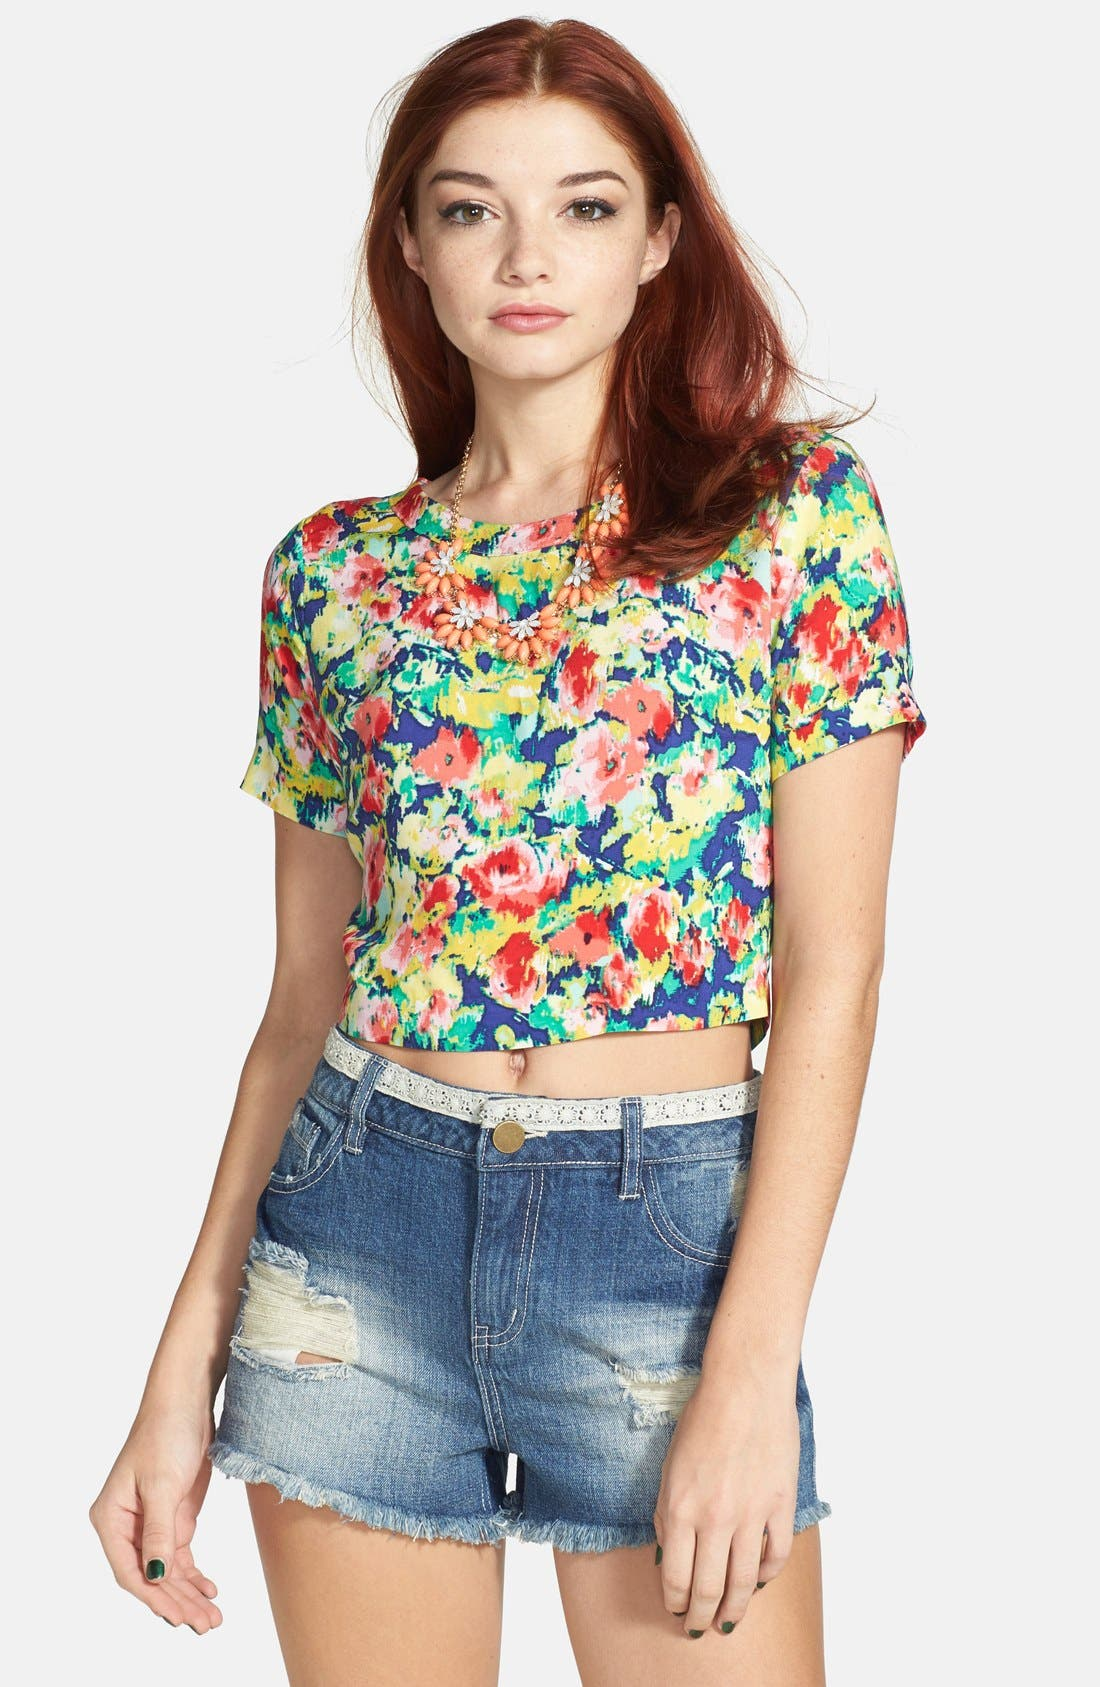 Main Image - Socialite Back Button Print Crop Top (Juniors) (Online Only)